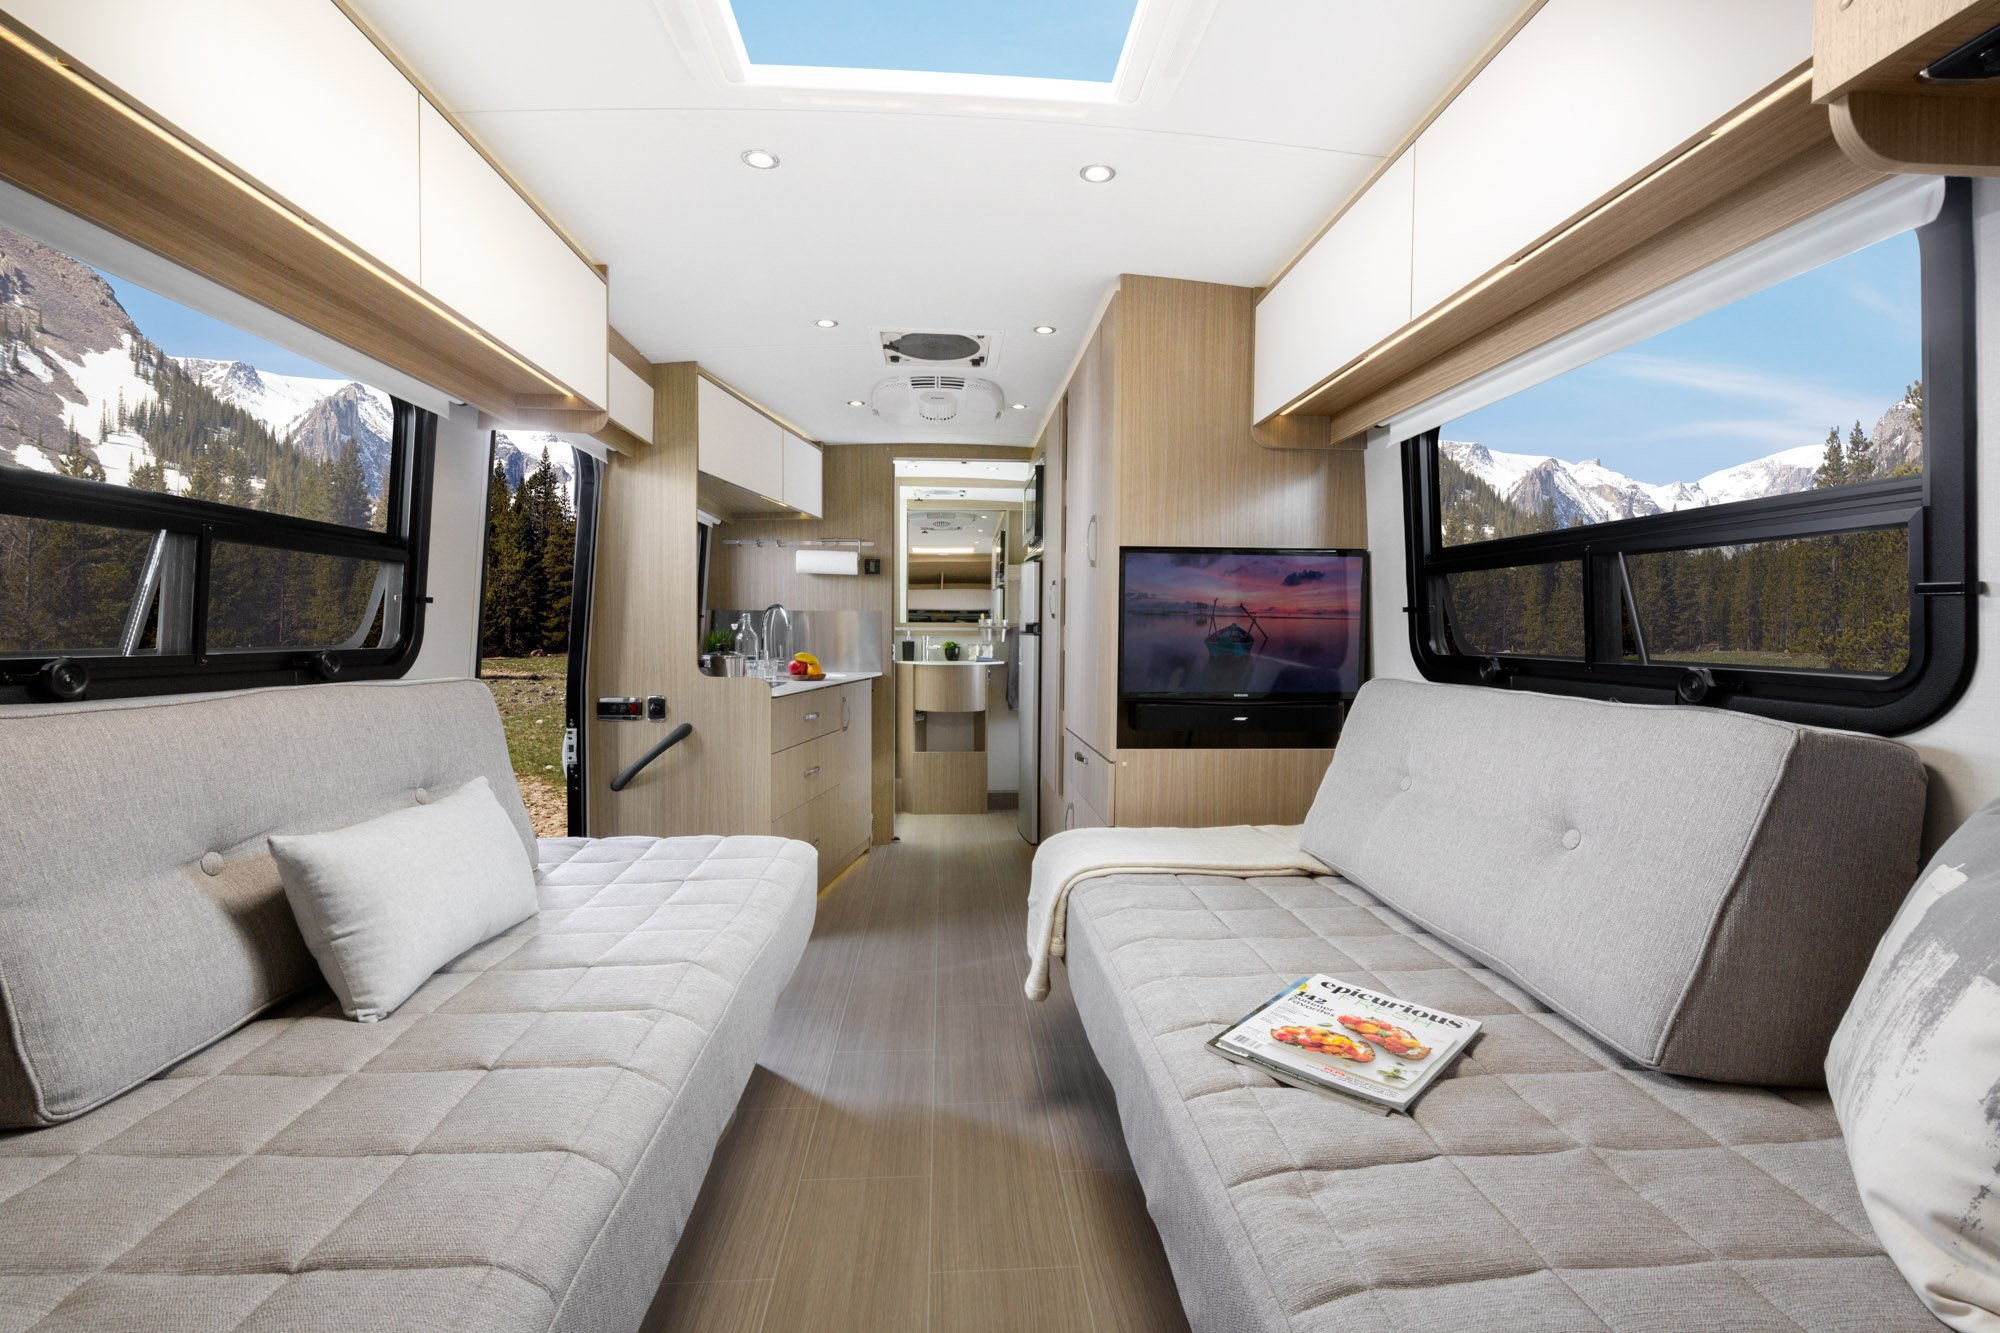 Leisure Travel Vans Adds Front Twin Bed Model To Wonder